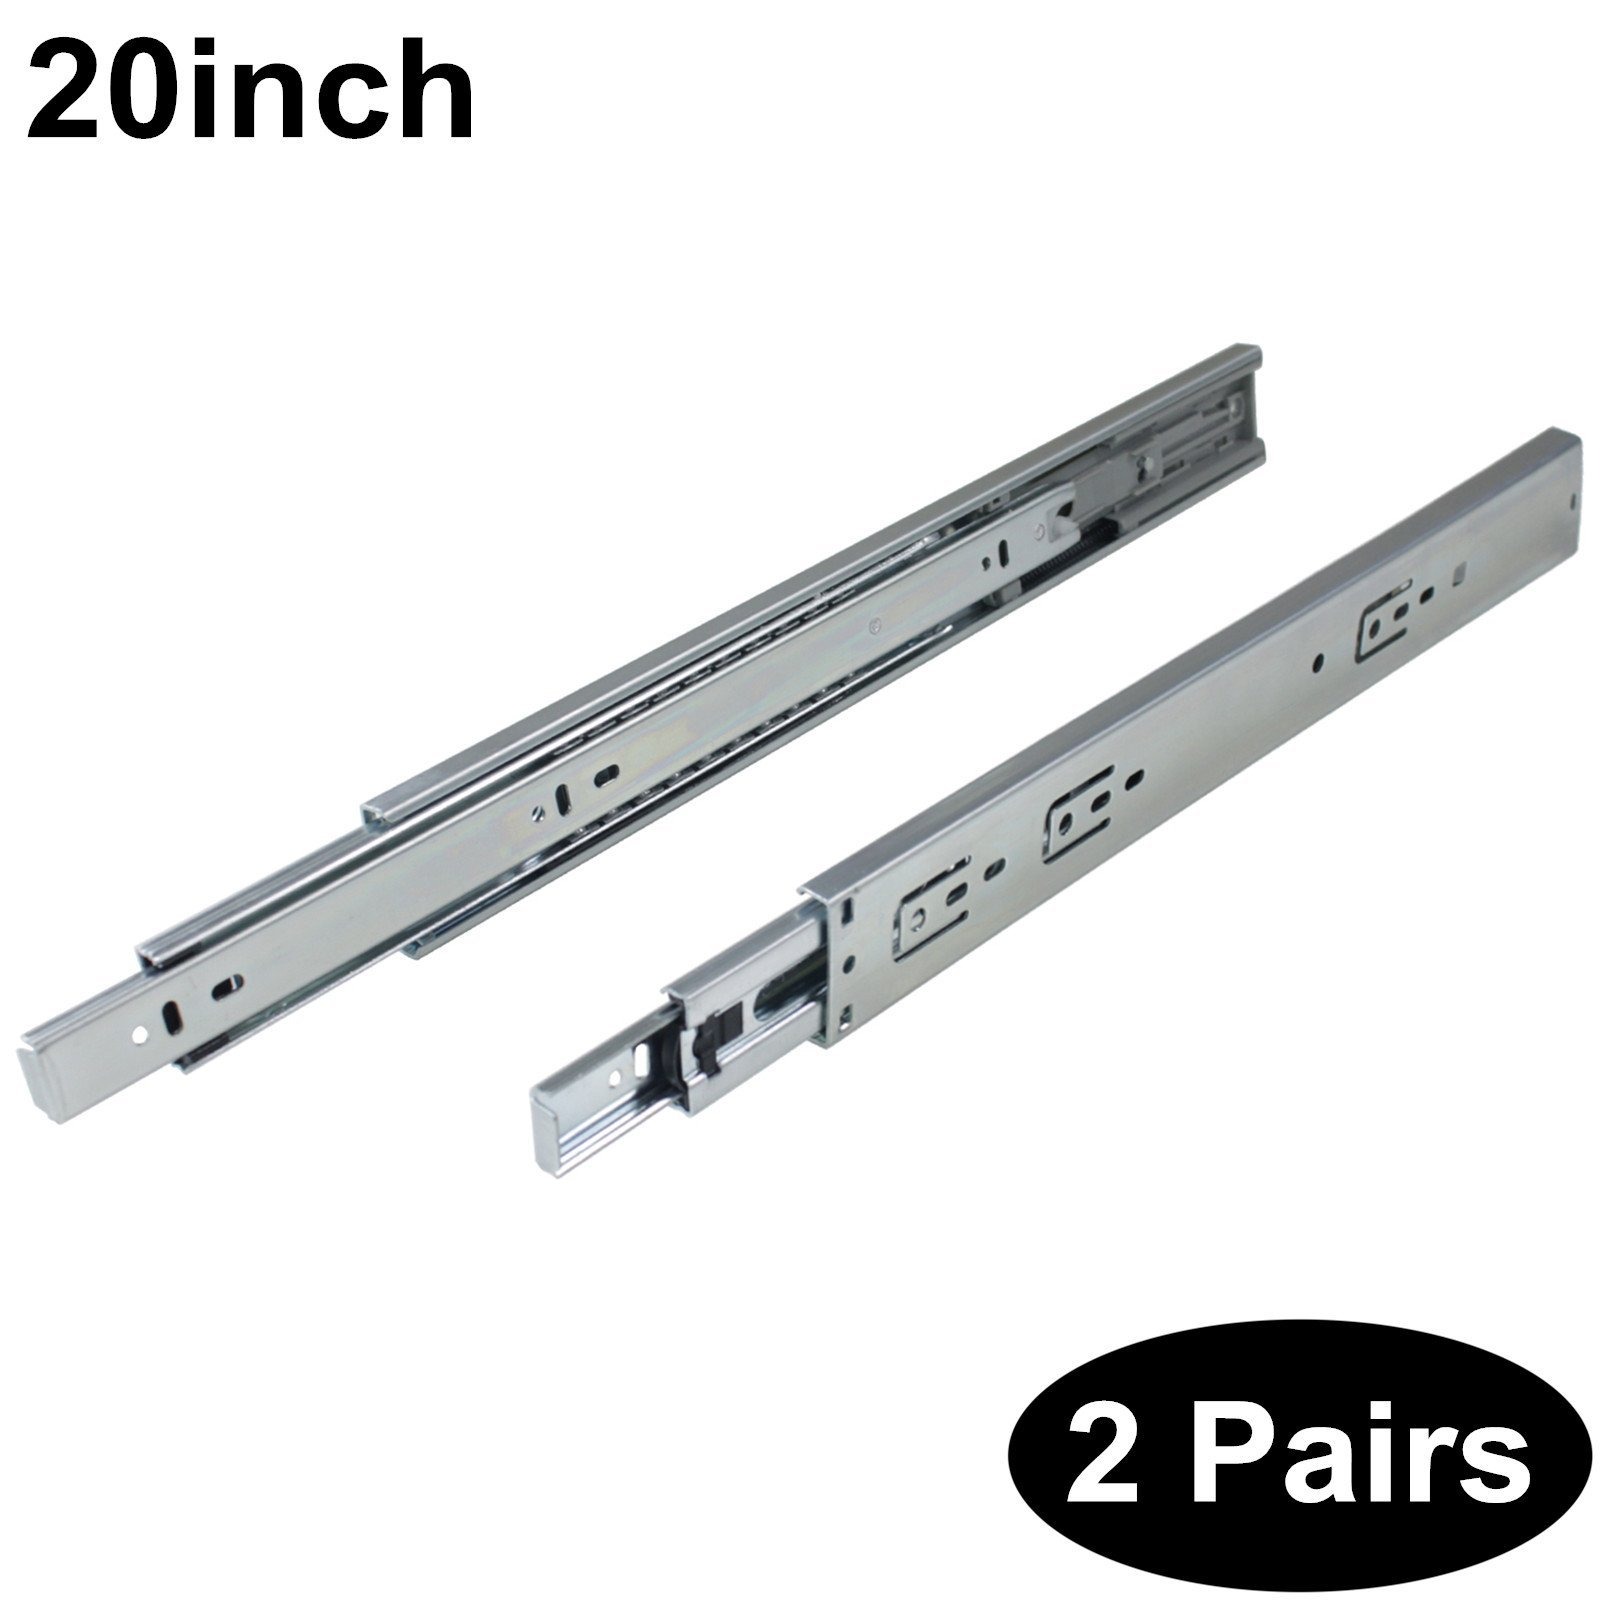 2 Pairs Soft Close DHH32-20 inch Full Extension Side Mount Drawer Slides 3-Folds Ball Bearing;100-pound Capacity